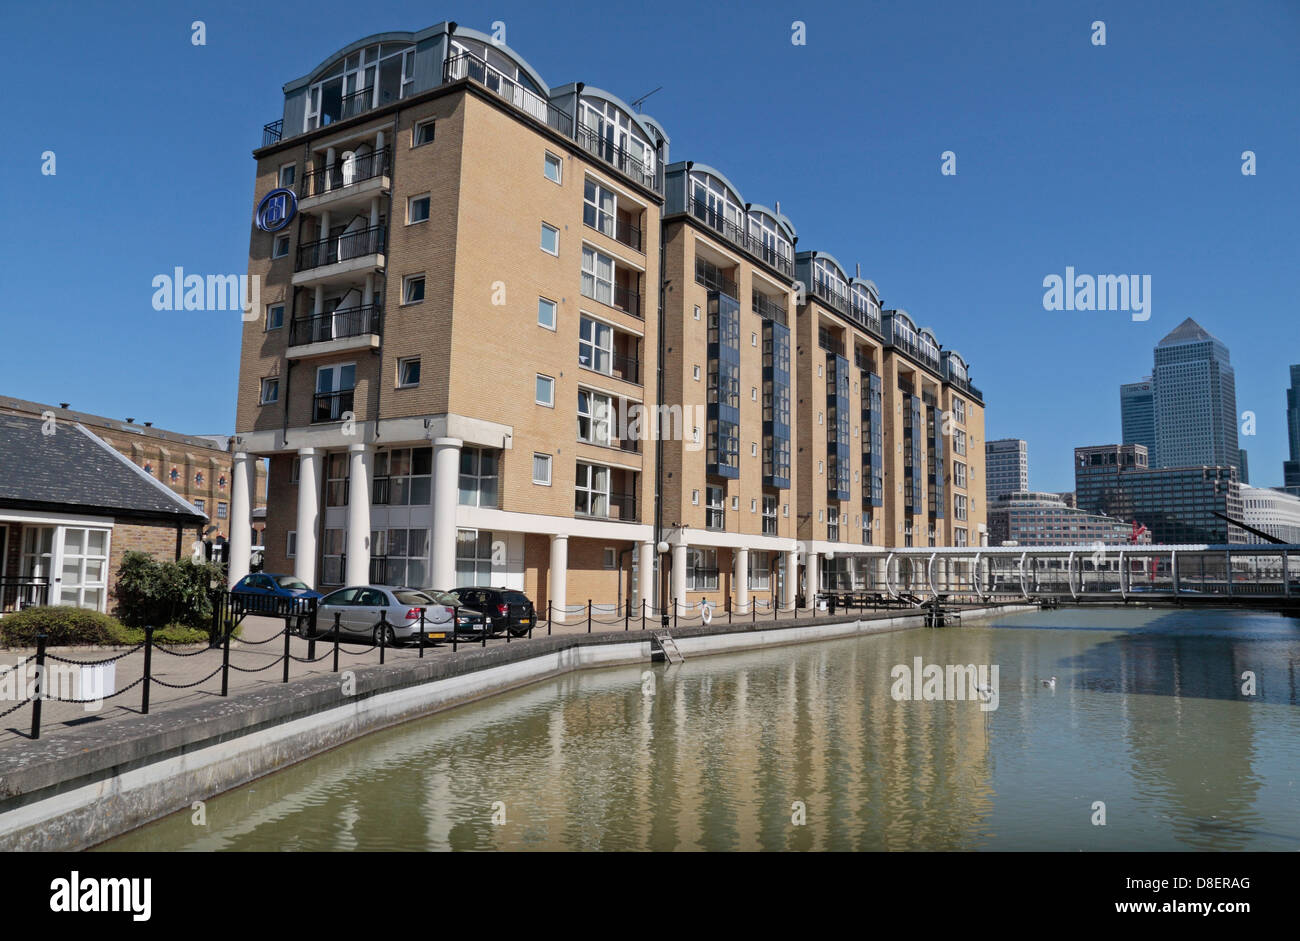 The Hilton London Docklands Riverside hotel, opposite the Canary Wharf tower, in Bermondsey, Rotherhithe, London, - Stock Image